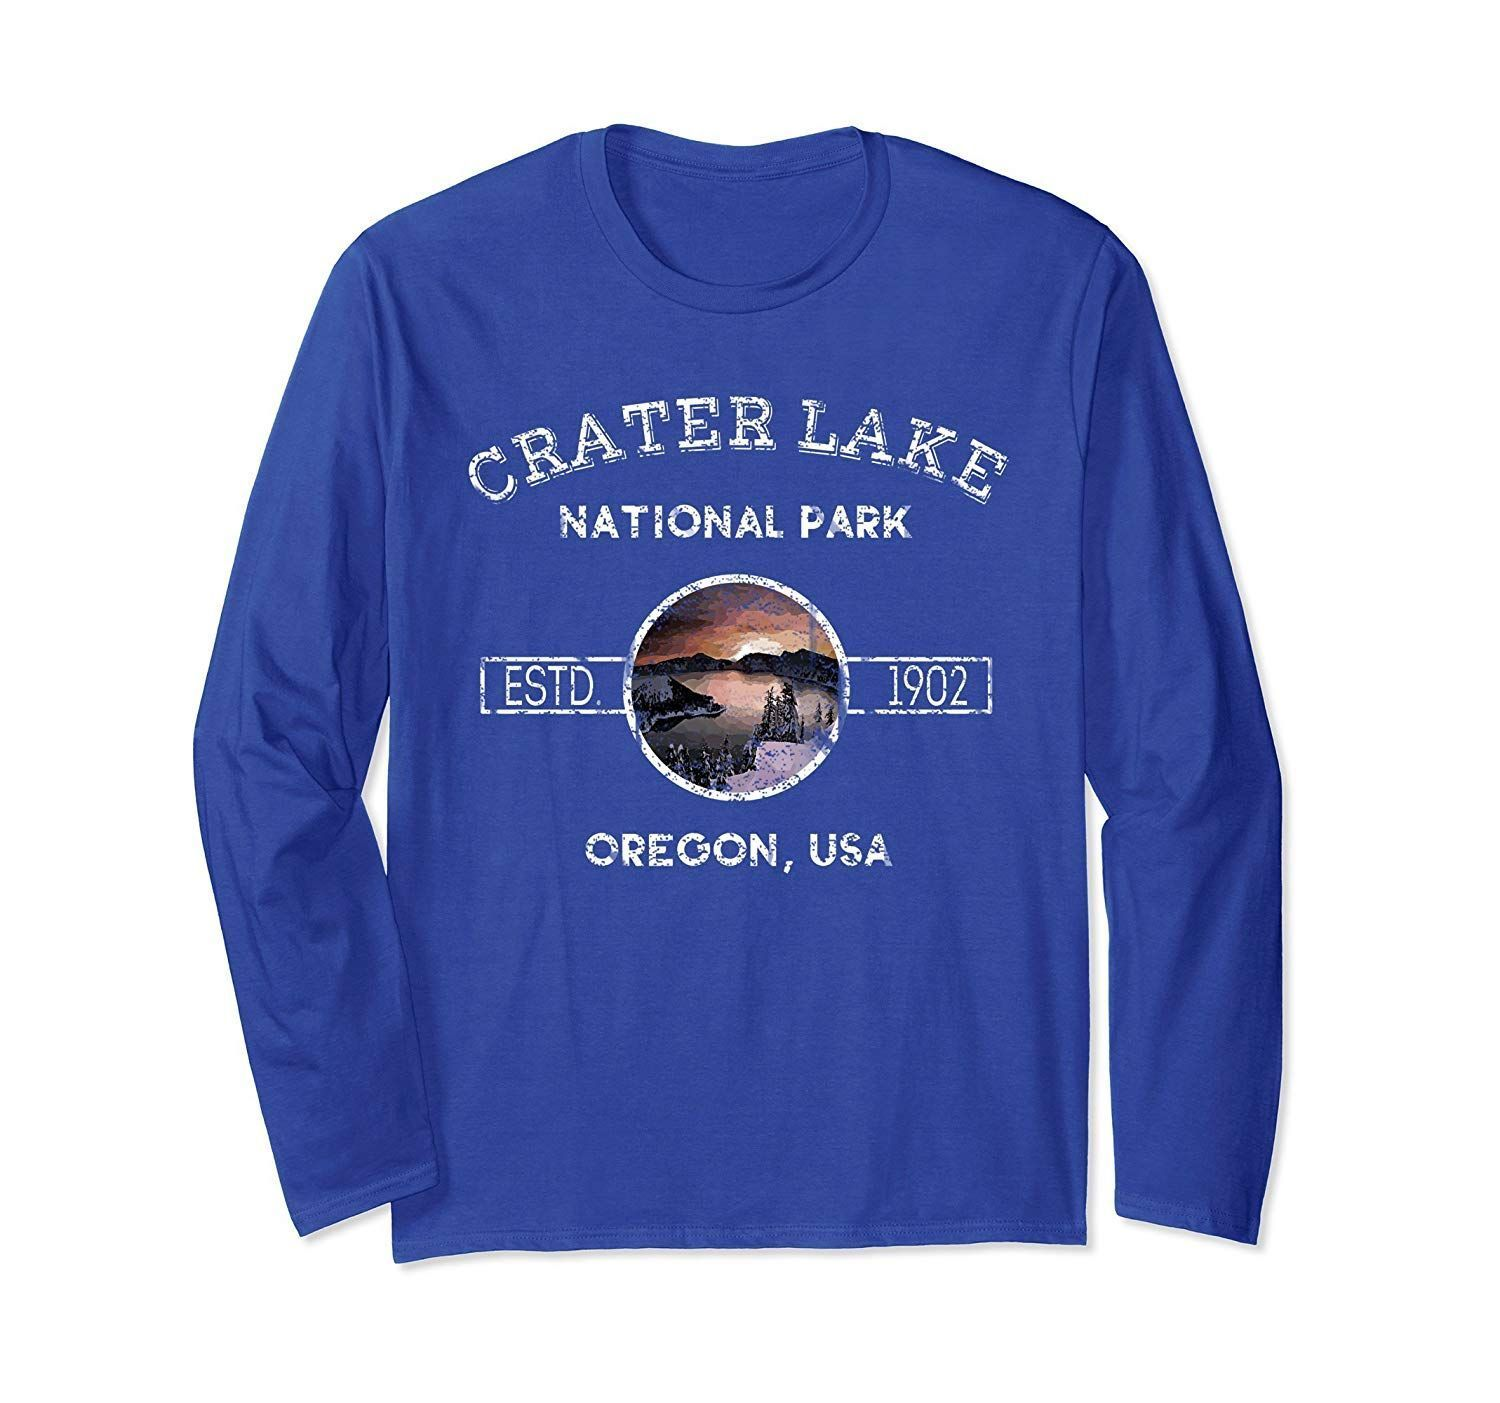 Colorful Crater Lake Oregon Distressed Long Sleeve T-Shirt-Samdetee #craterlakeoregon Colorful Crater Lake Oregon Distressed Long Sleeve T-Shirt-Samdetee #craterlakeoregon Colorful Crater Lake Oregon Distressed Long Sleeve T-Shirt-Samdetee #craterlakeoregon Colorful Crater Lake Oregon Distressed Long Sleeve T-Shirt-Samdetee #craterlakeoregon